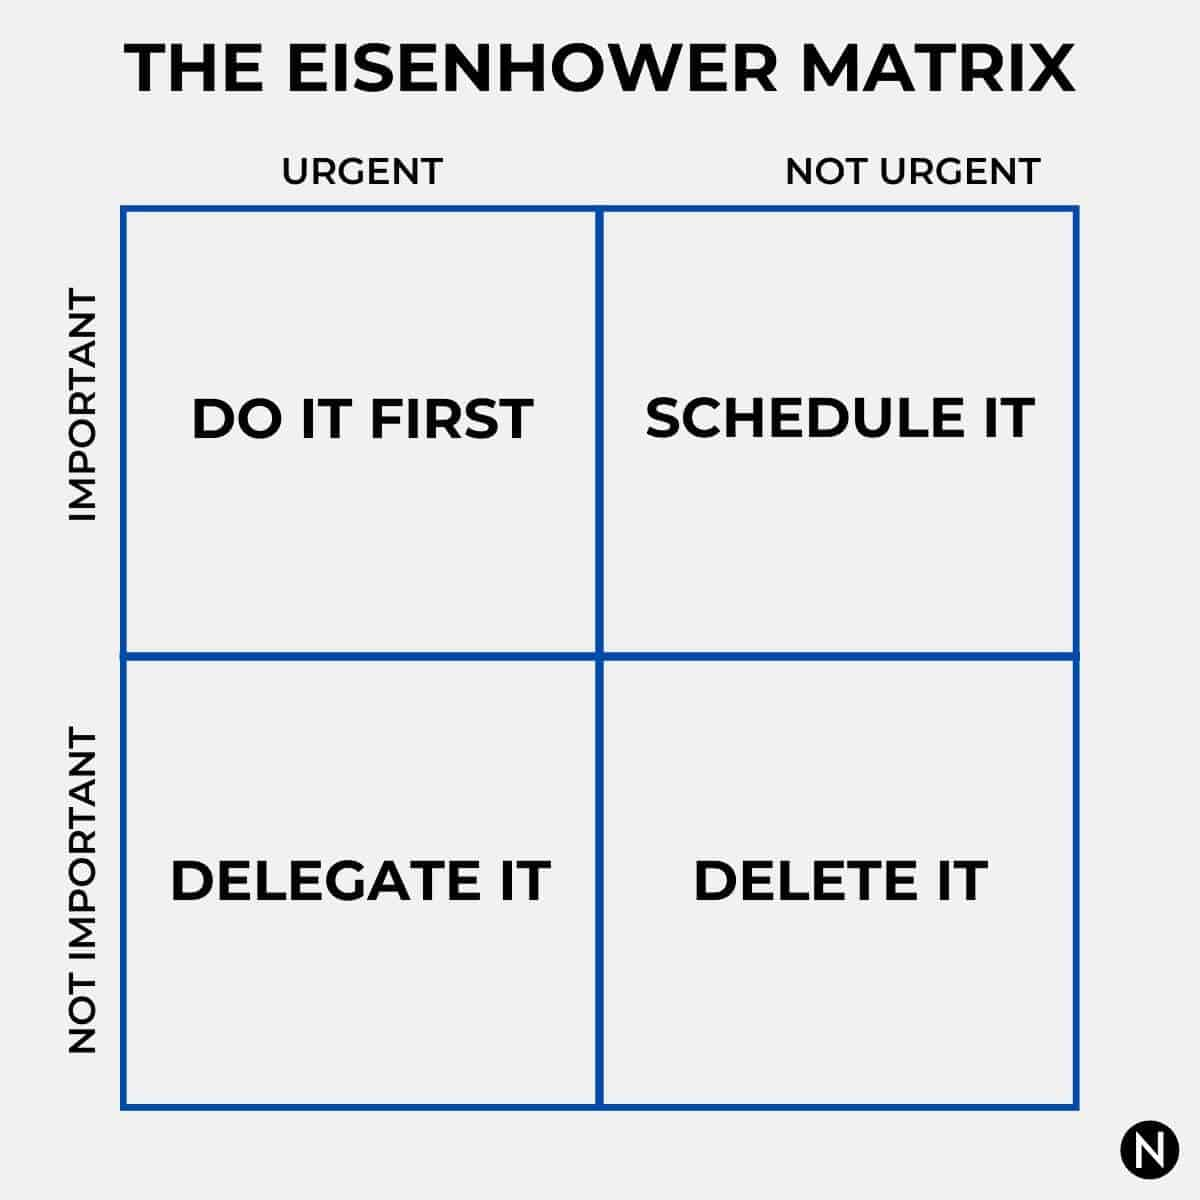 Diagram of the Eisenhower Matrix.